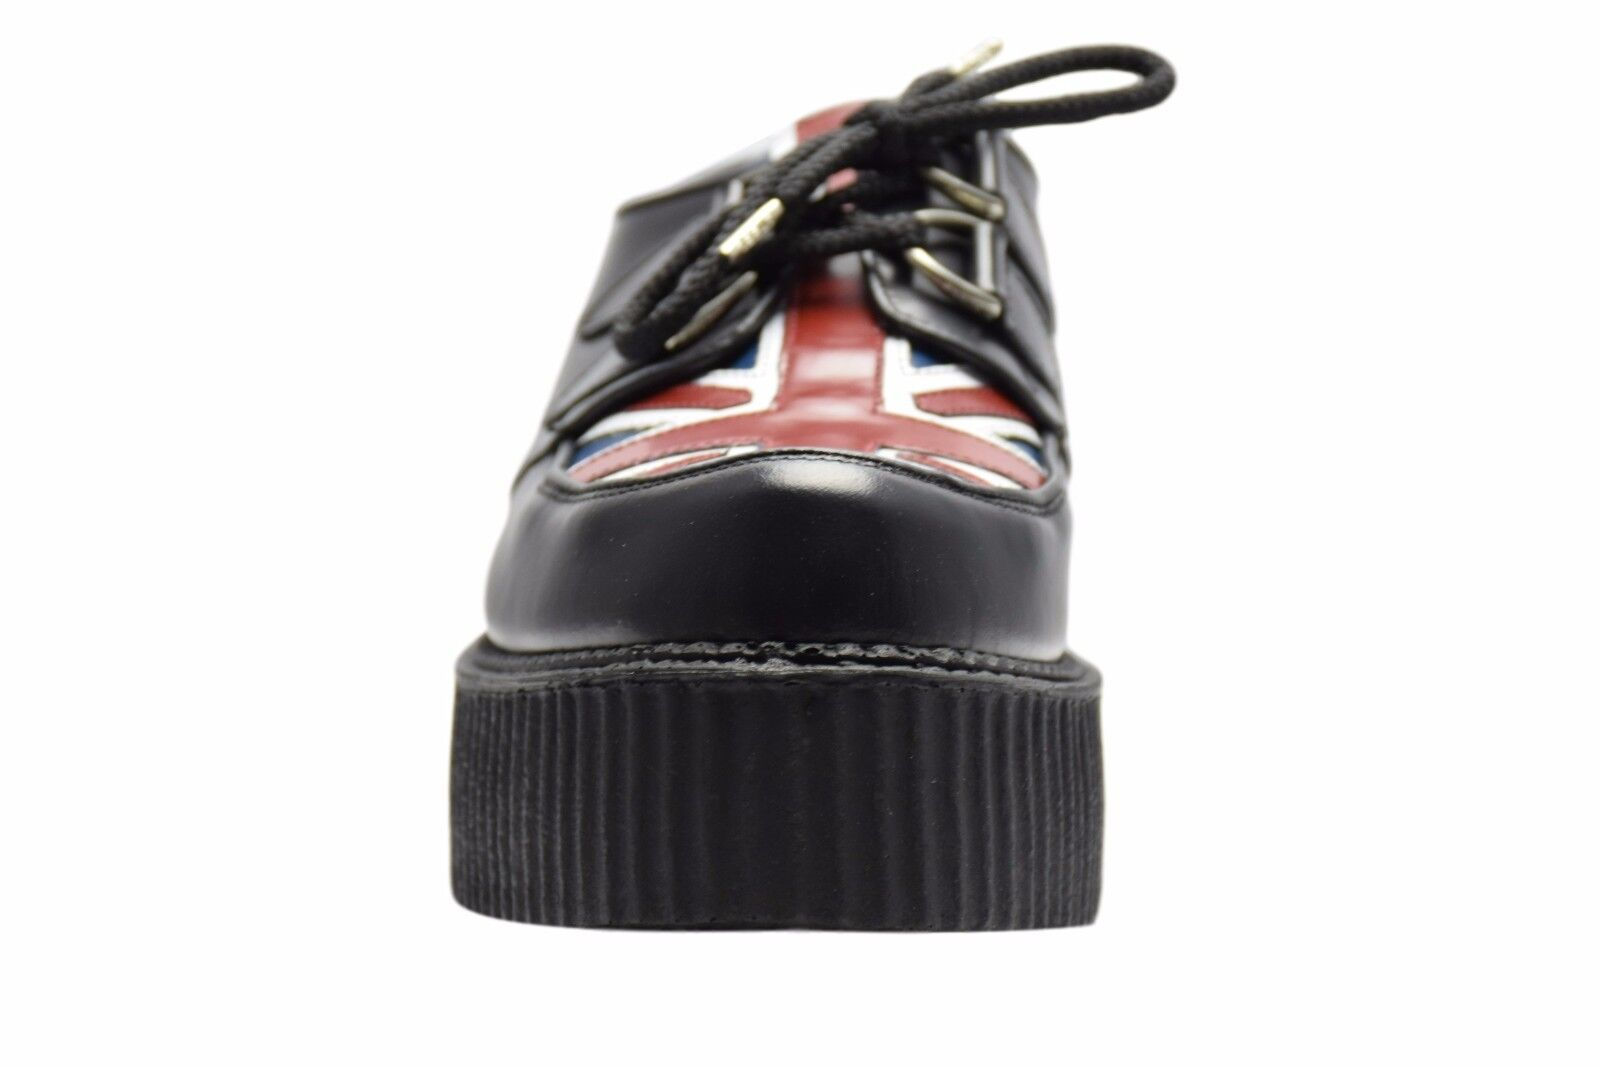 Steel Ground Schuhes schwarz Leder Union Jack Creepers High Sole D Ring Casual